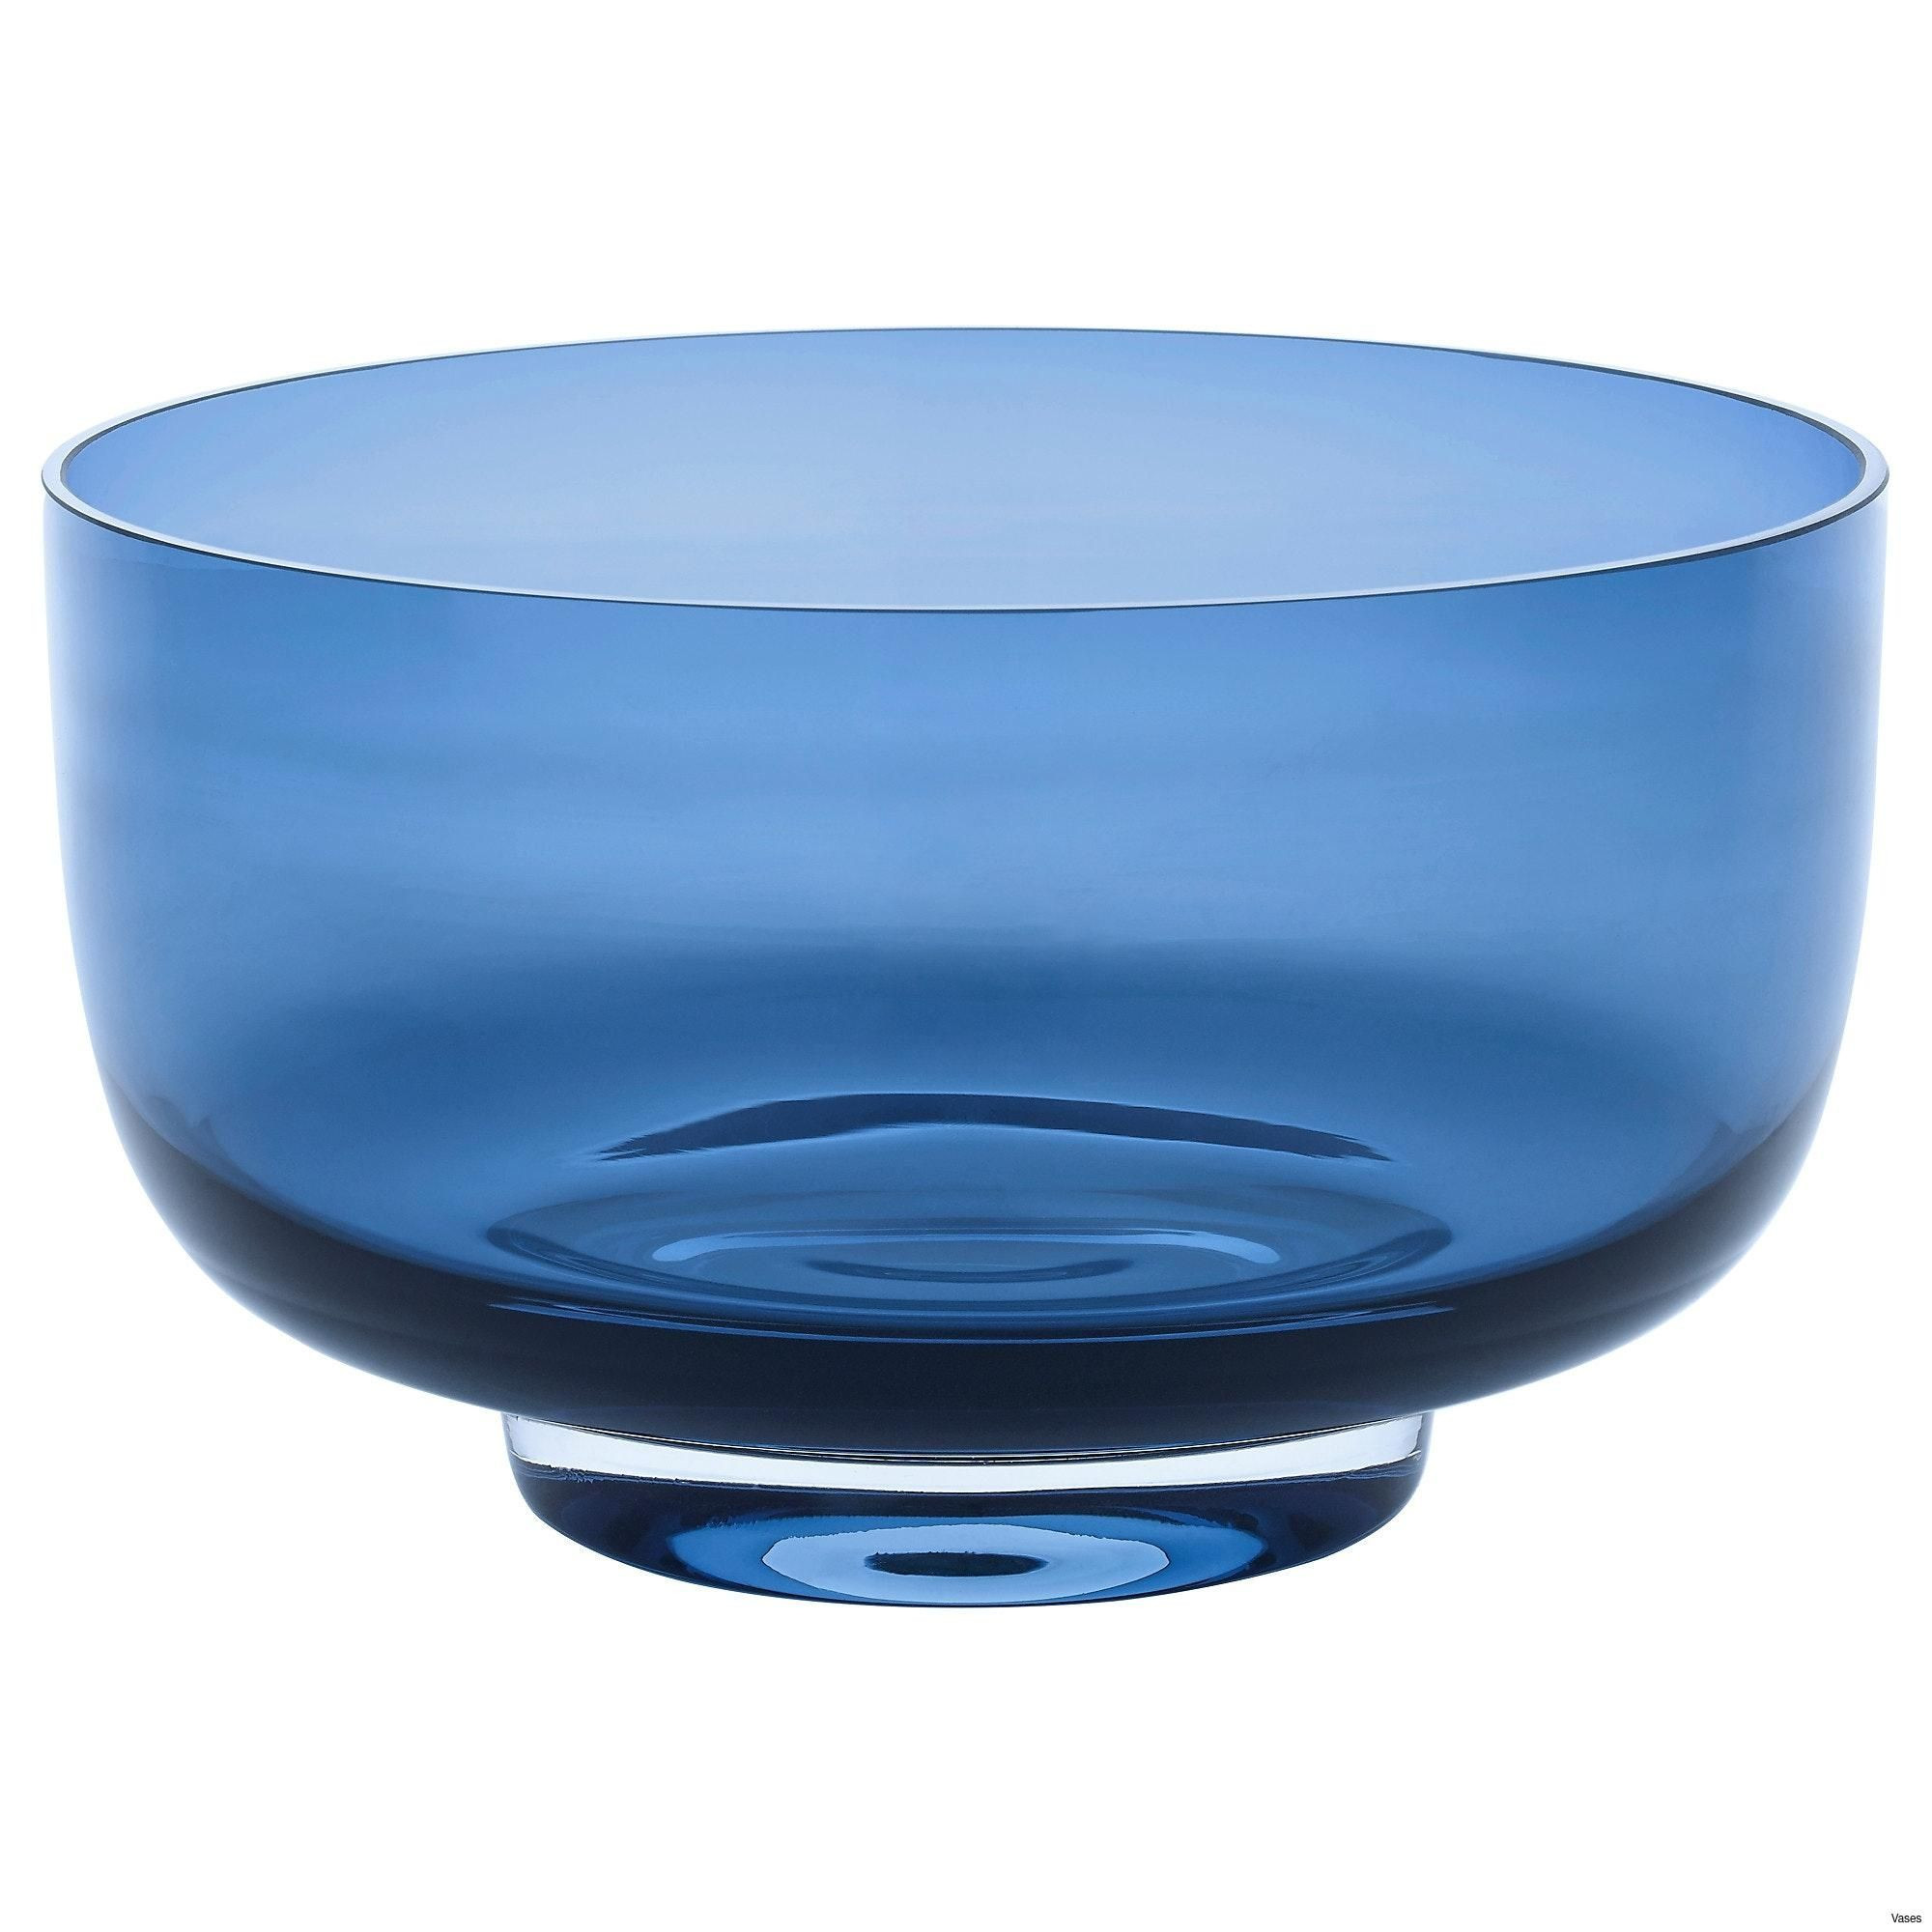 galle vase prices of art glass vase luxury decorative glass bowl new living room ikea in art glass vase luxury decorative glass bowl new living room ikea vases awesome pe s5h